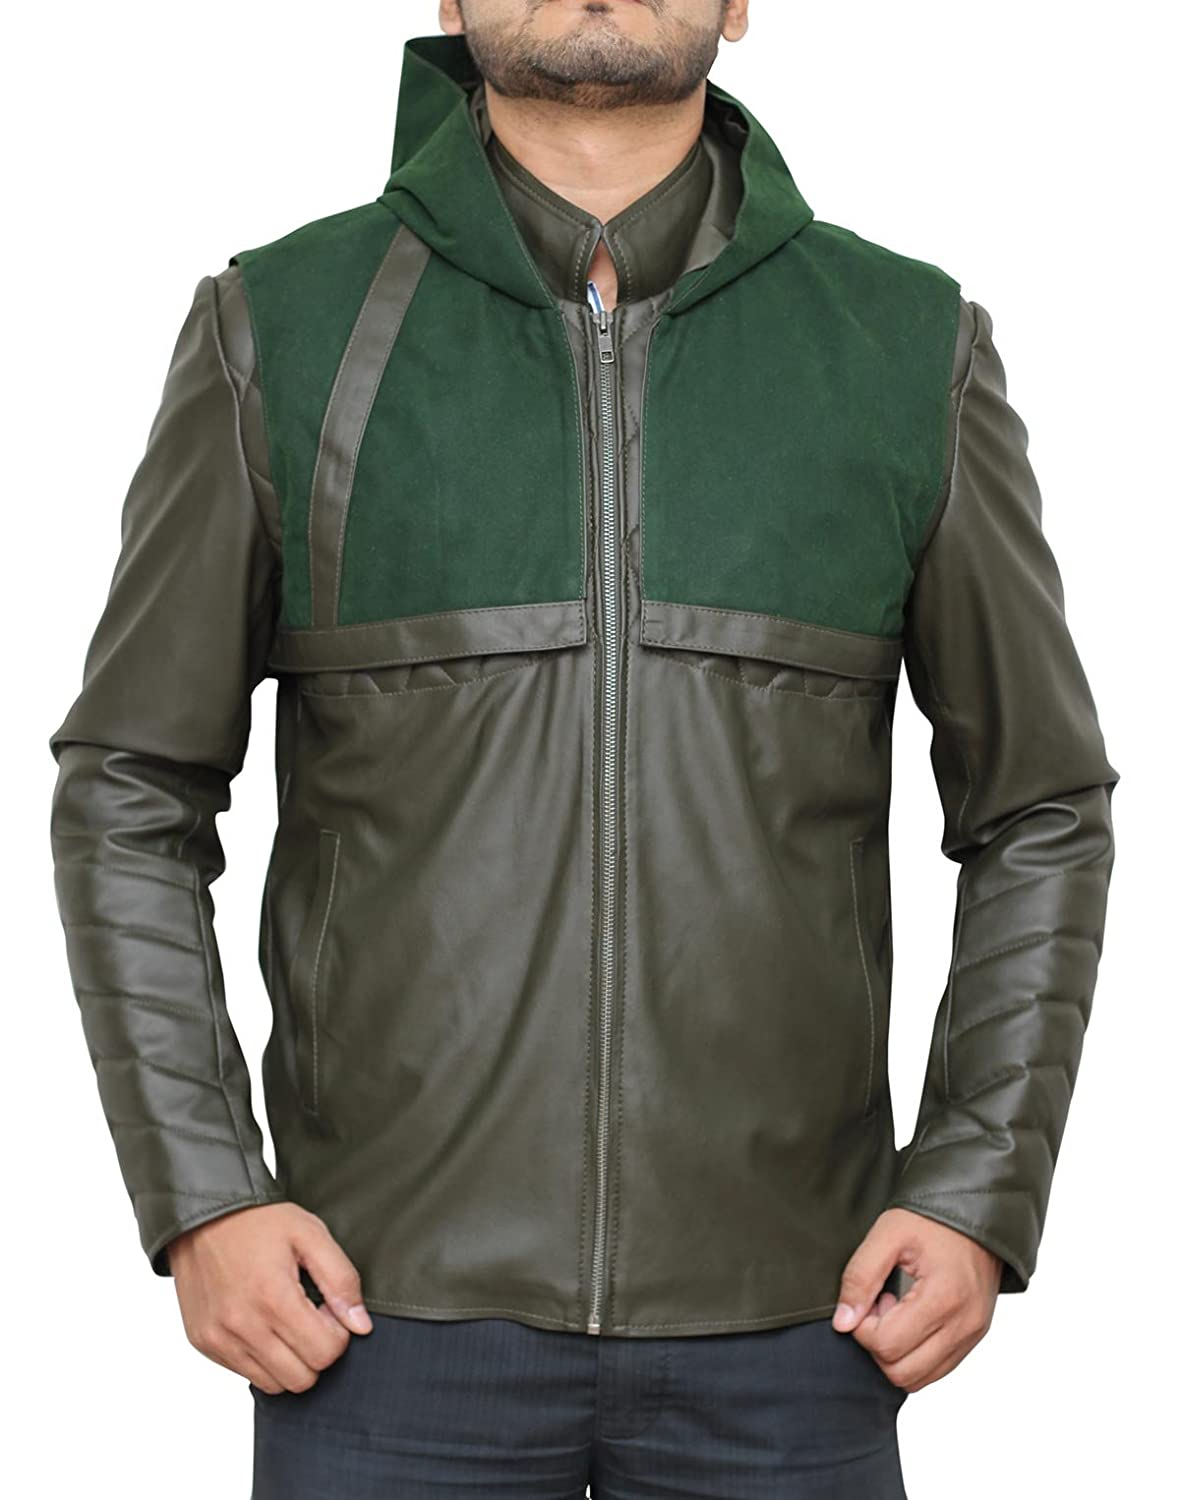 Leather jacket repair vancouver - Amazon Com Arrow Hoodie Leather Costume Jackets Available In 4 Designs Clothing